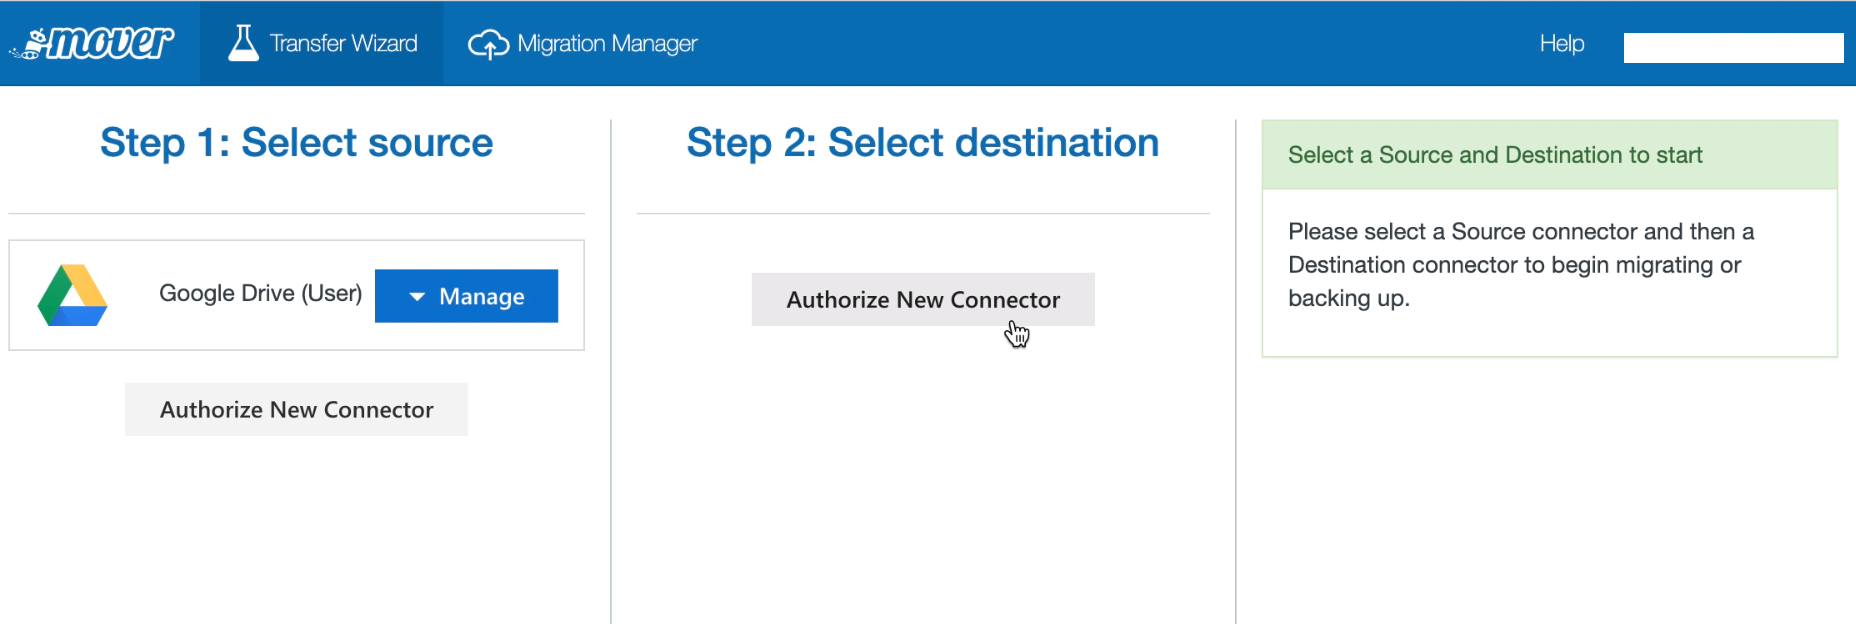 Authorize New Connector